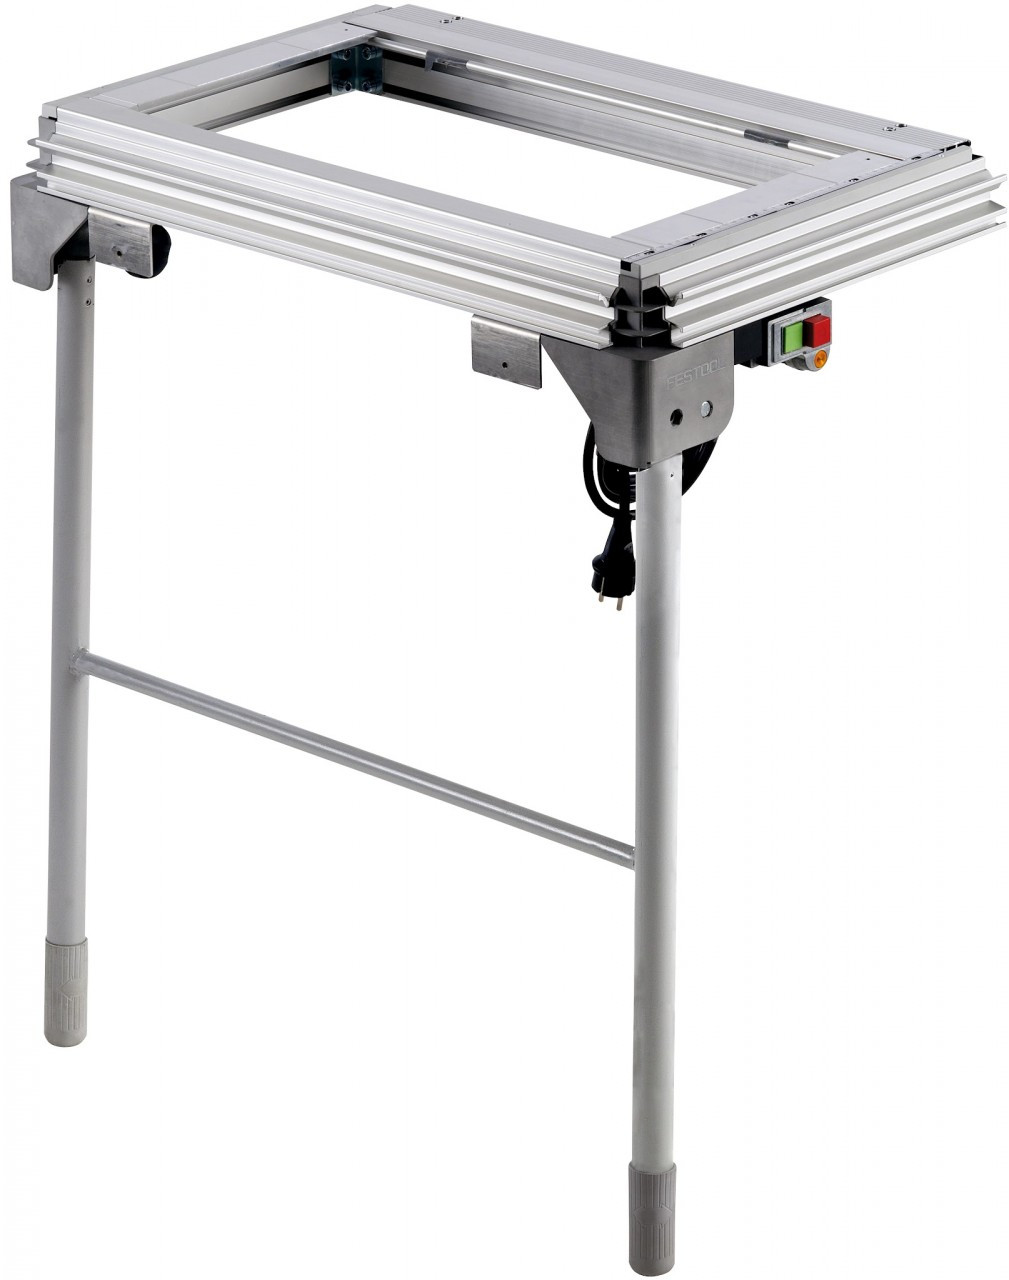 Cms vl mft3 router table basic 203157 replaces 57000025 festool cms vl mft3 router table basic 203157 replaces 57000025 greentooth Image collections